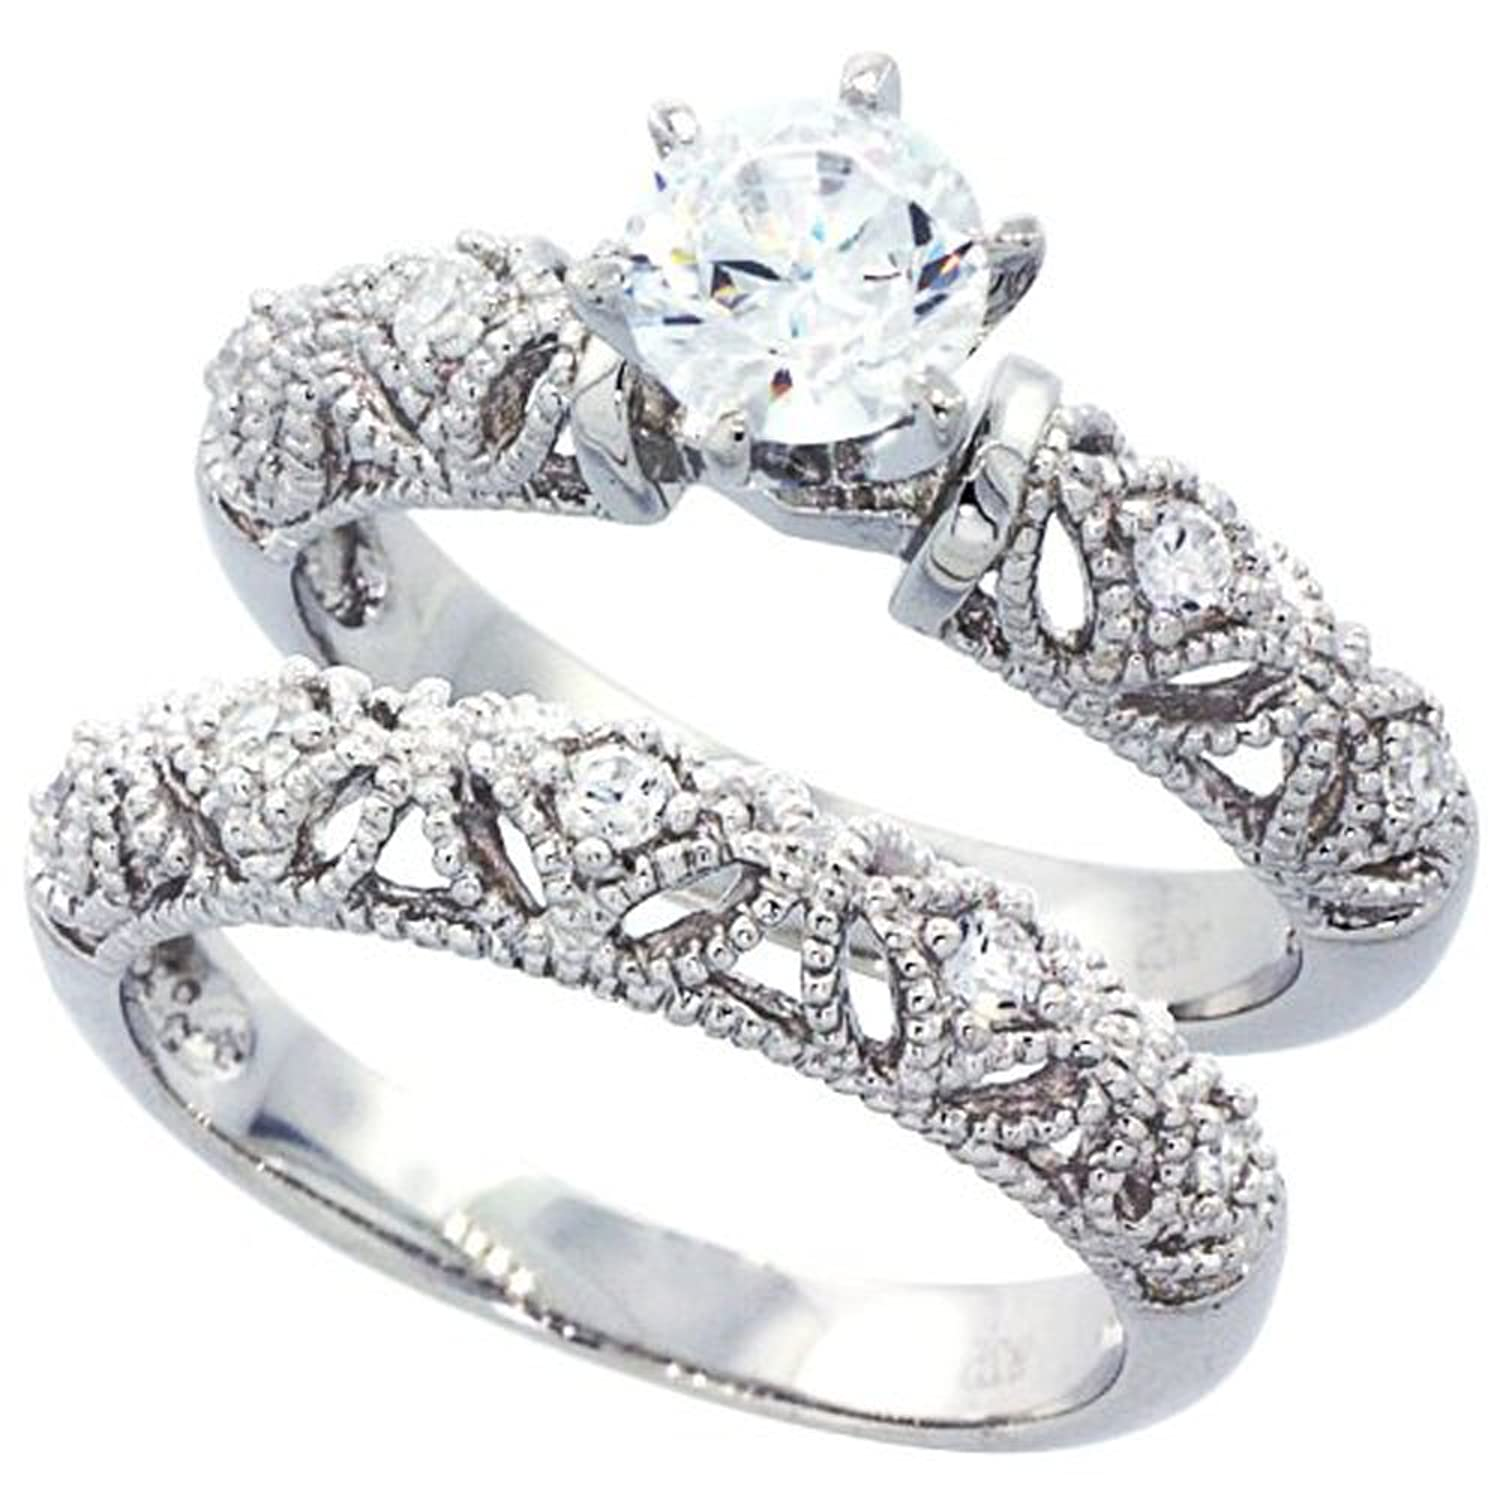 set sets jewellery steel classic bridal bands ring round engagement zirconia cut women s cubic stainless wedding for